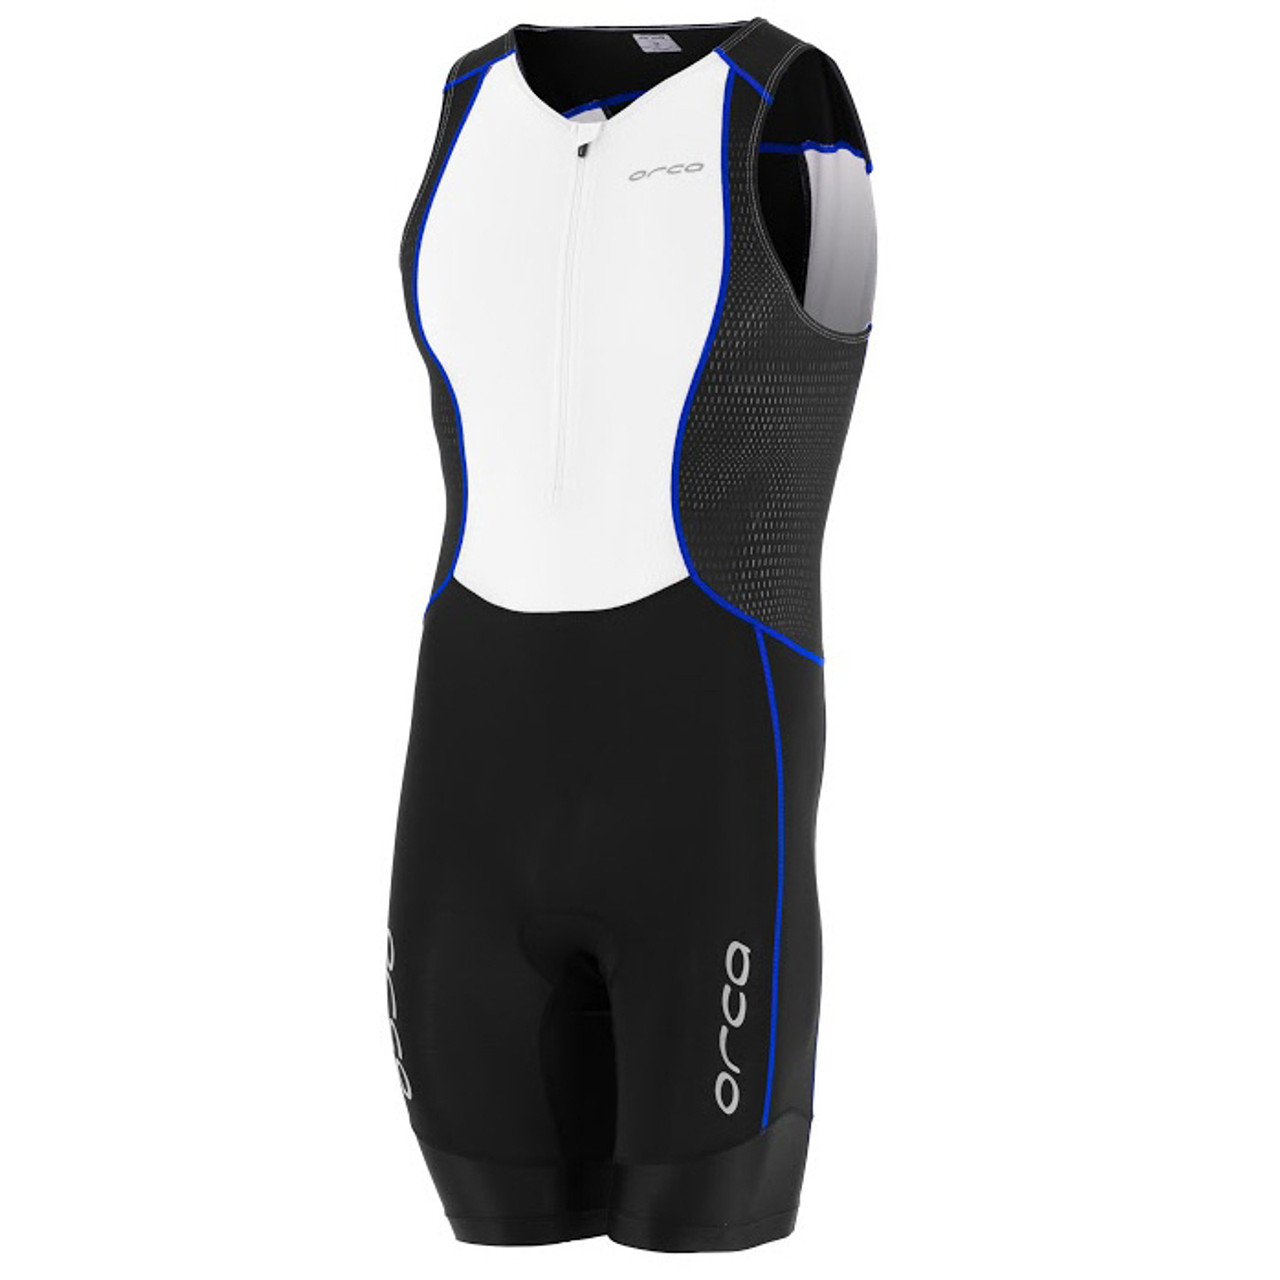 Women's Clothing Clothing, Shoes & Accessories Orca 226 Kompress Race Winter Mens Tri Suit Cycling Running Swimming Triathlon